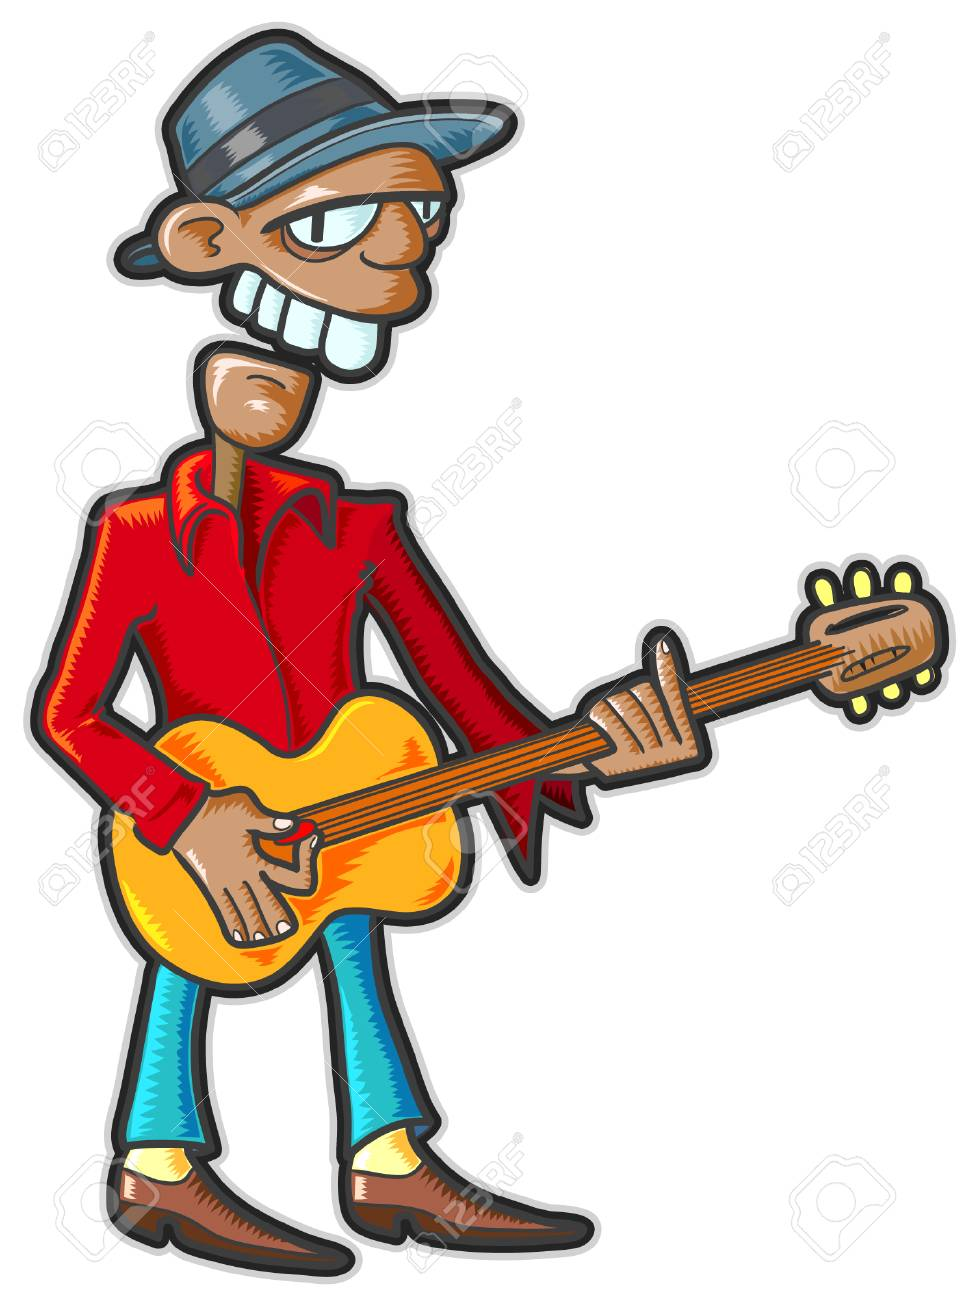 Guitarist. Vector illustration without gradients and transparencies Stock Vector - 4339293